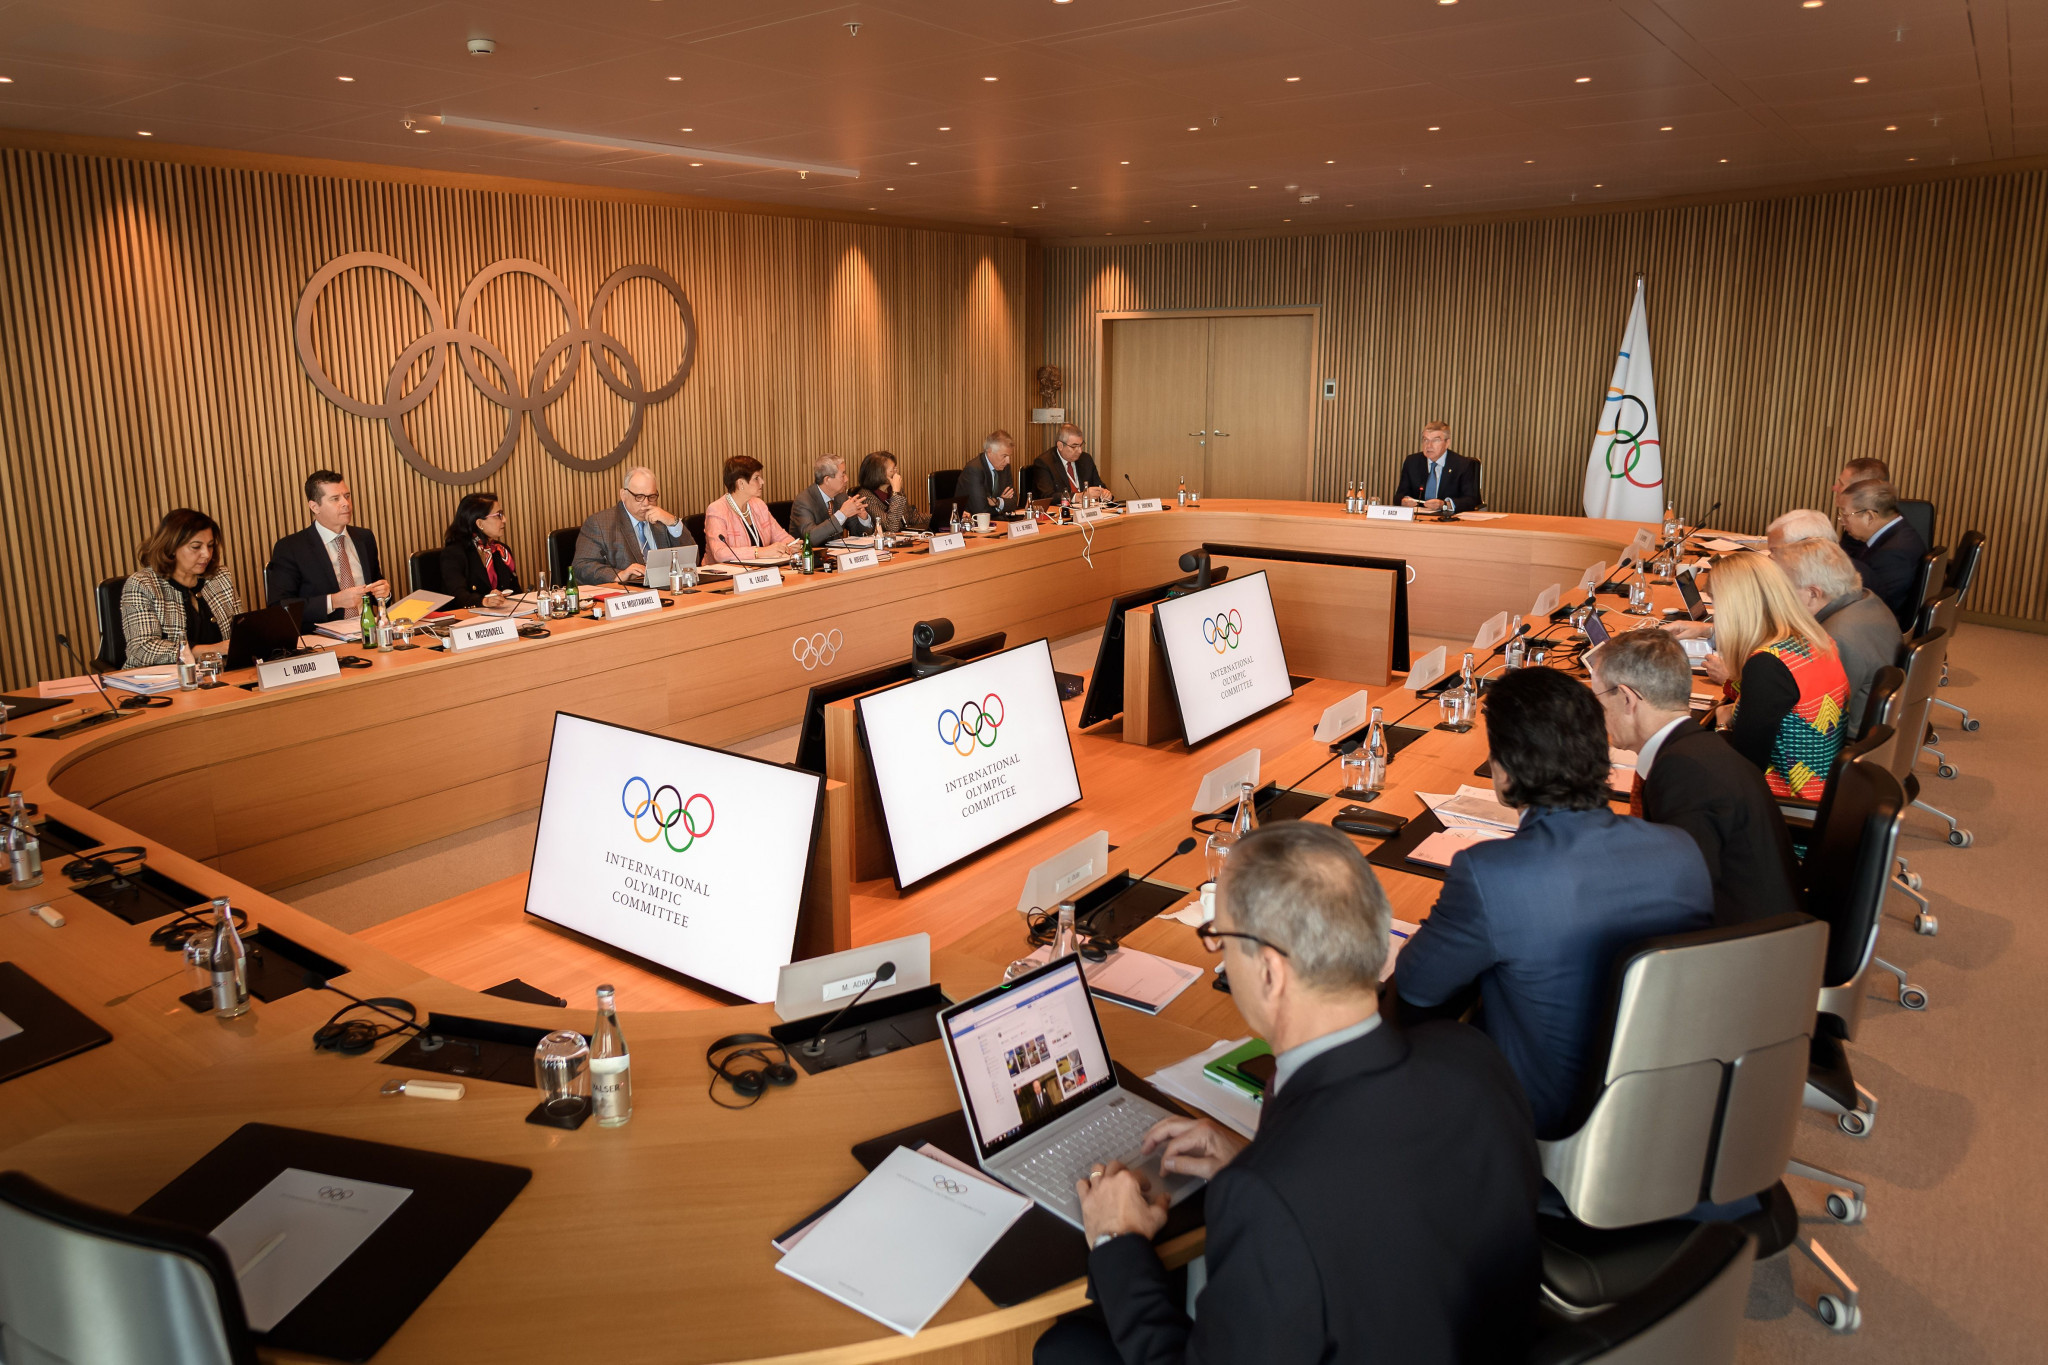 Thomas Bach claimed cancelling or postponing Tokyo 2020 was not considered during the latest Executive Board meeting ©Getty Images